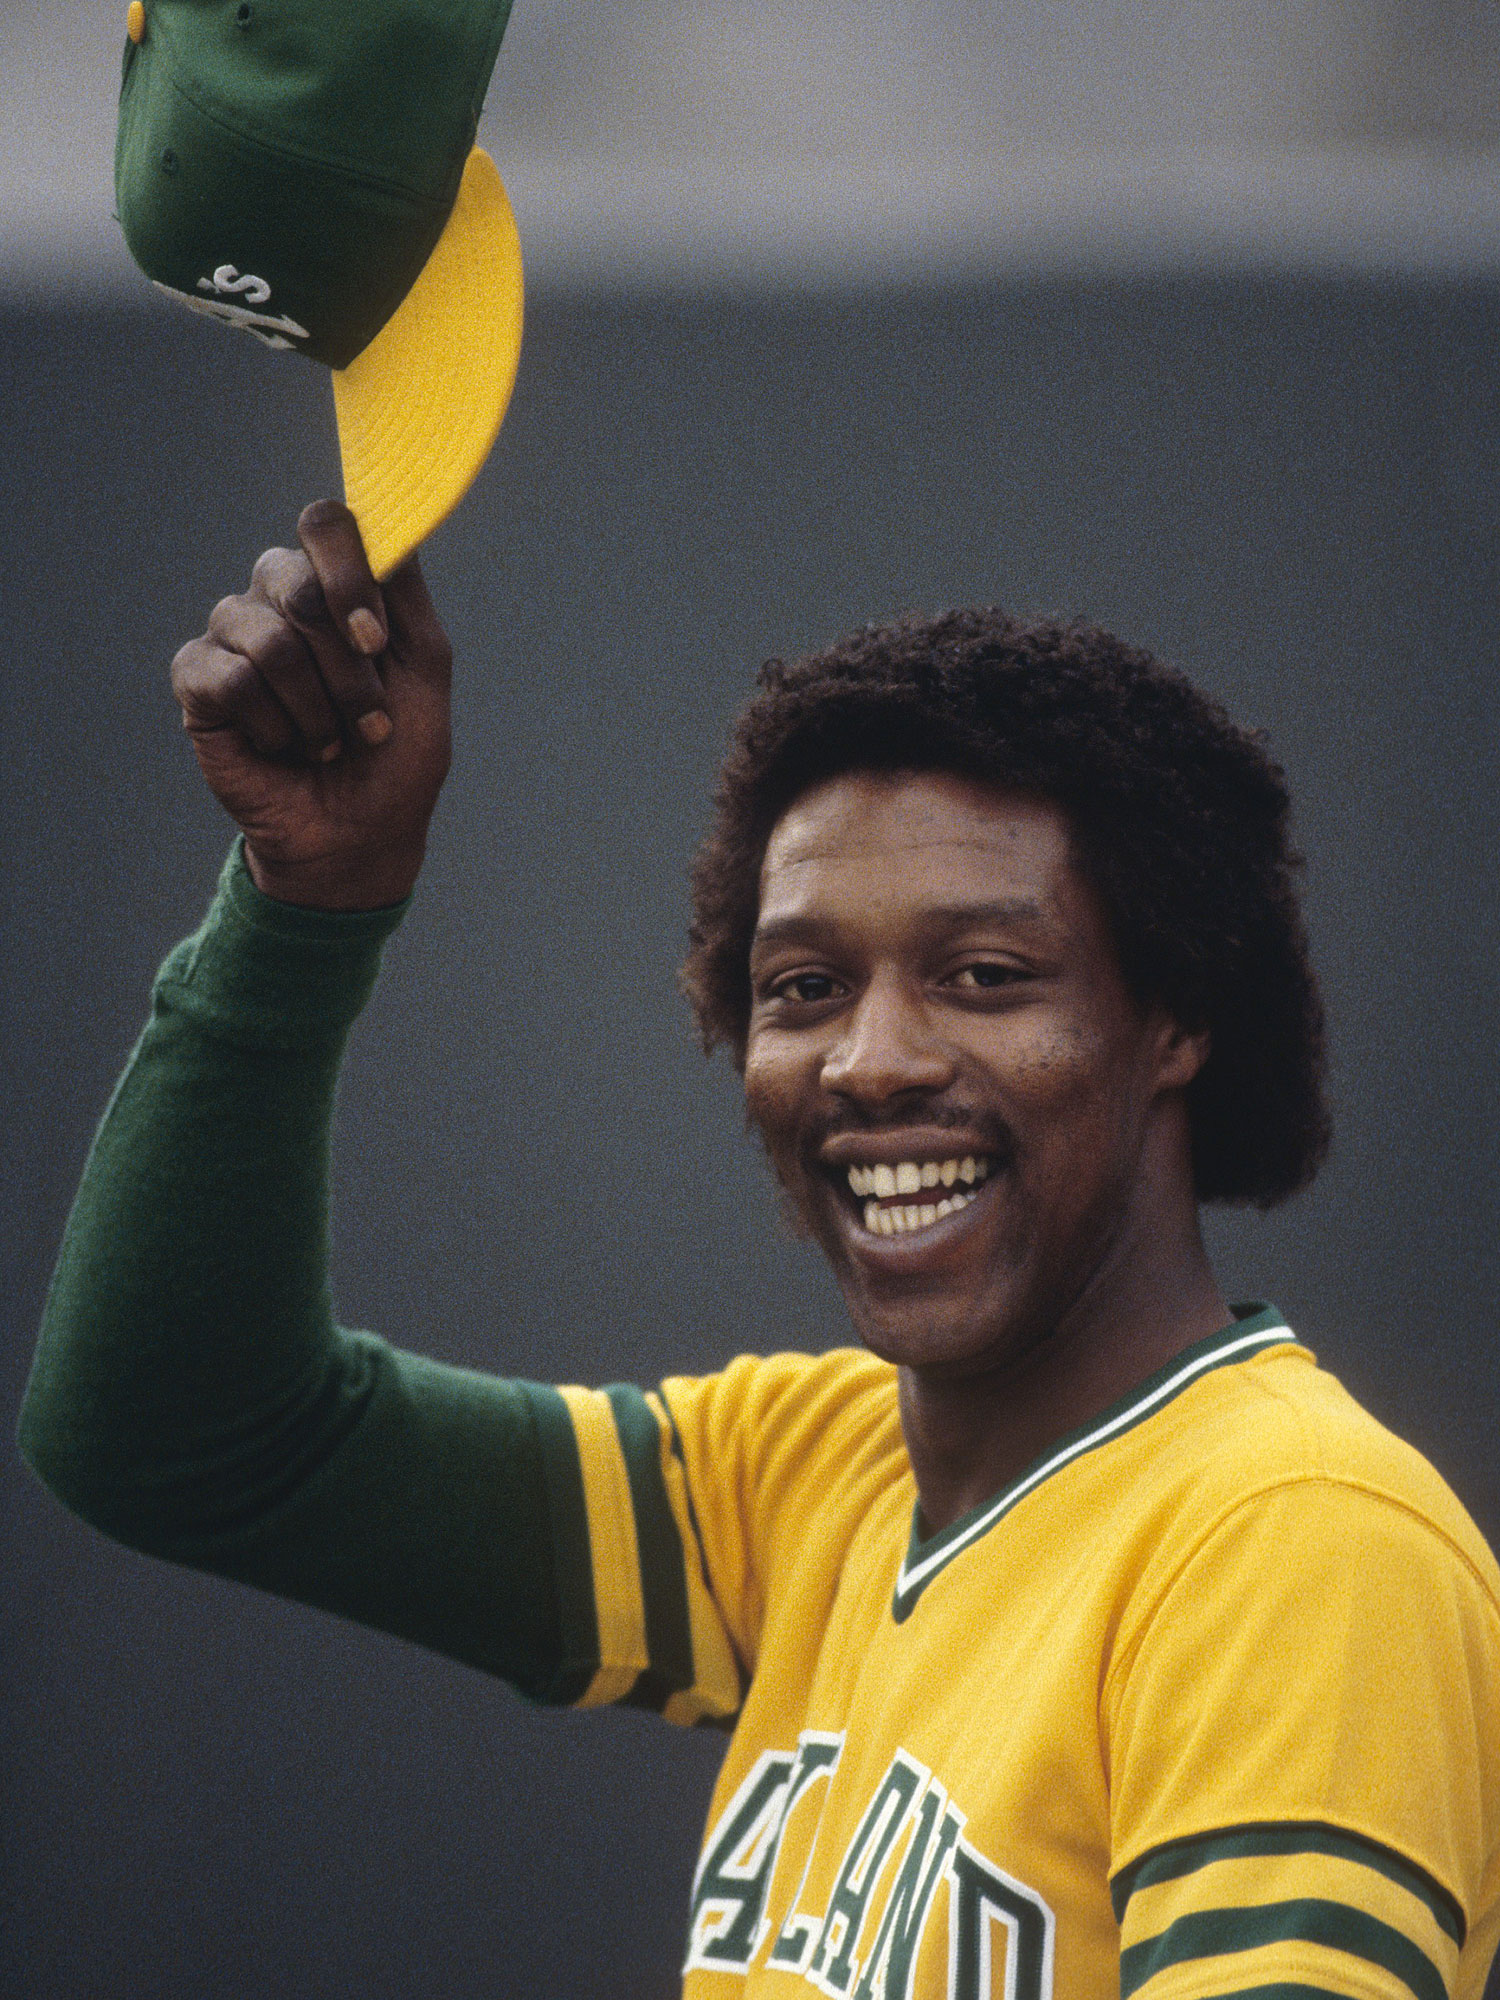 Mike Norris in 1980, the year he won 22 games for the A's.